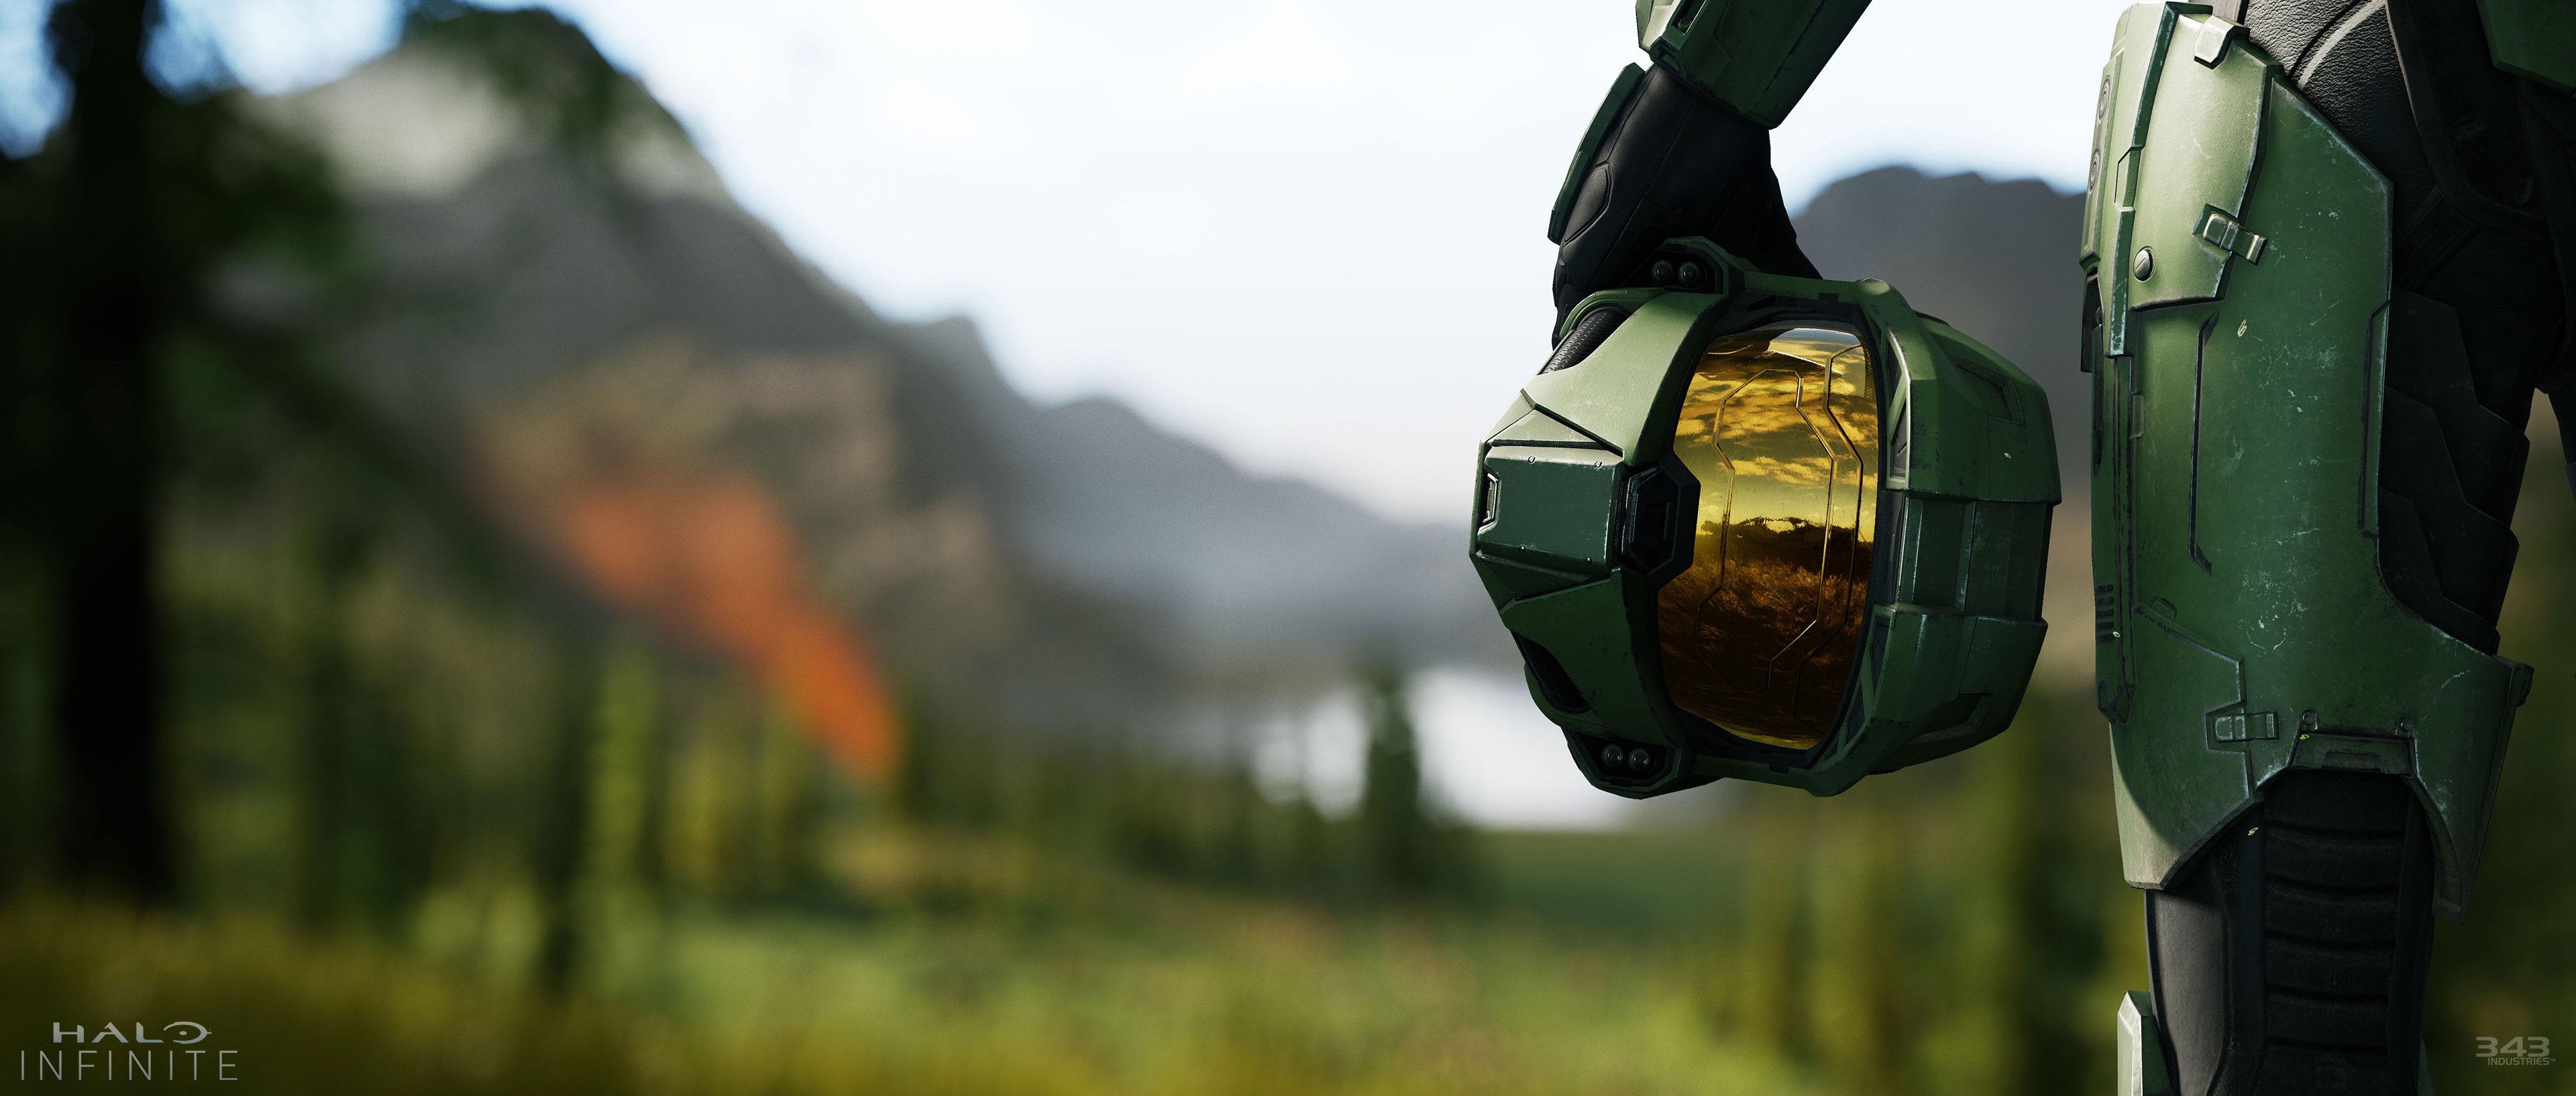 The live-action Halo TV series finds a director